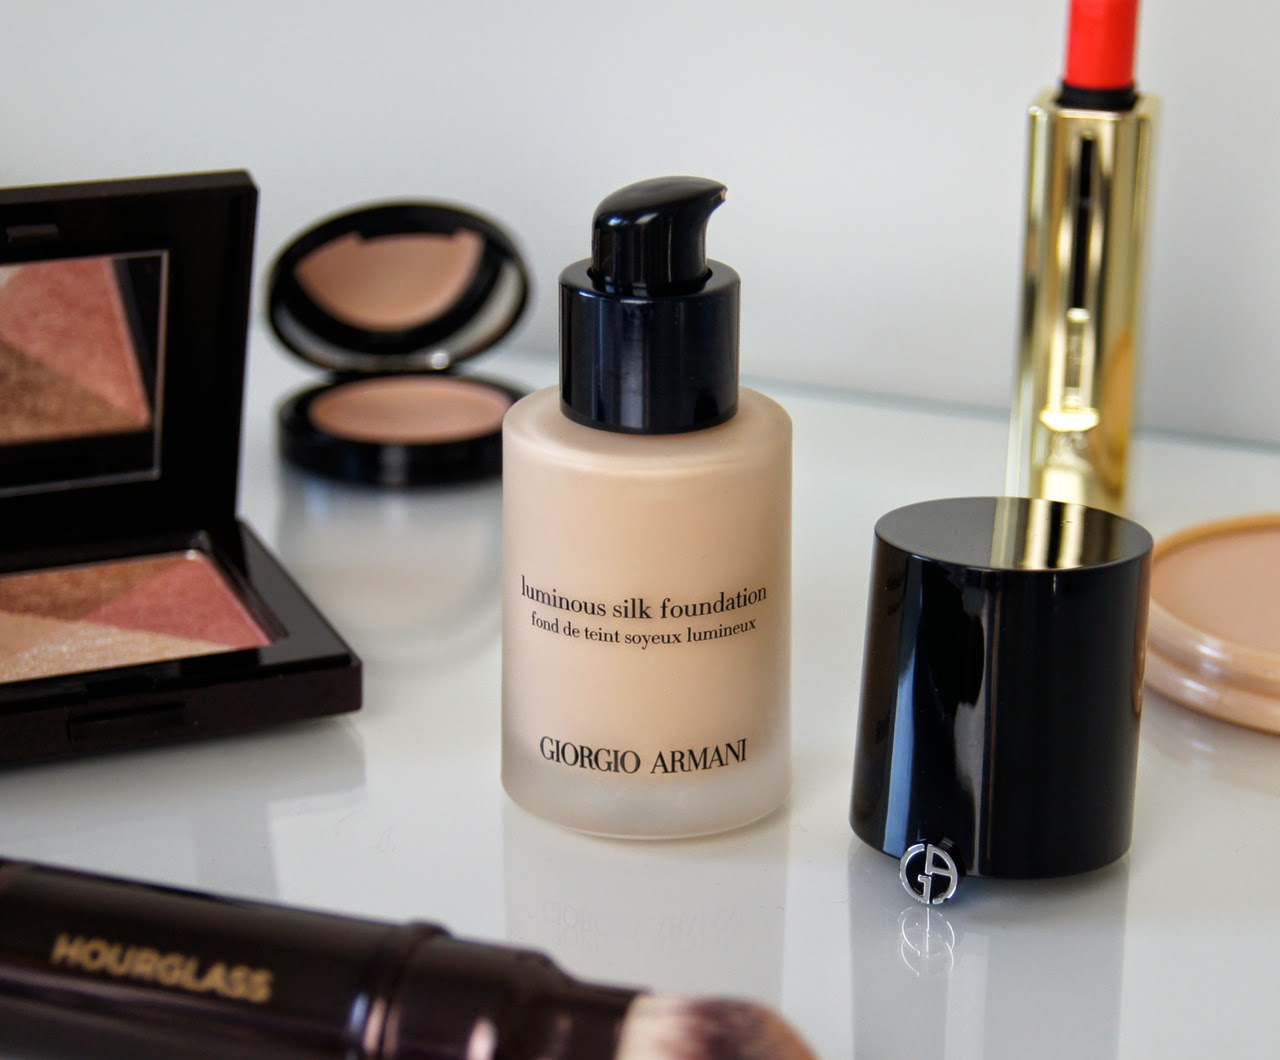 giorgio armani luminous silk foundation review swatch shade 3.5